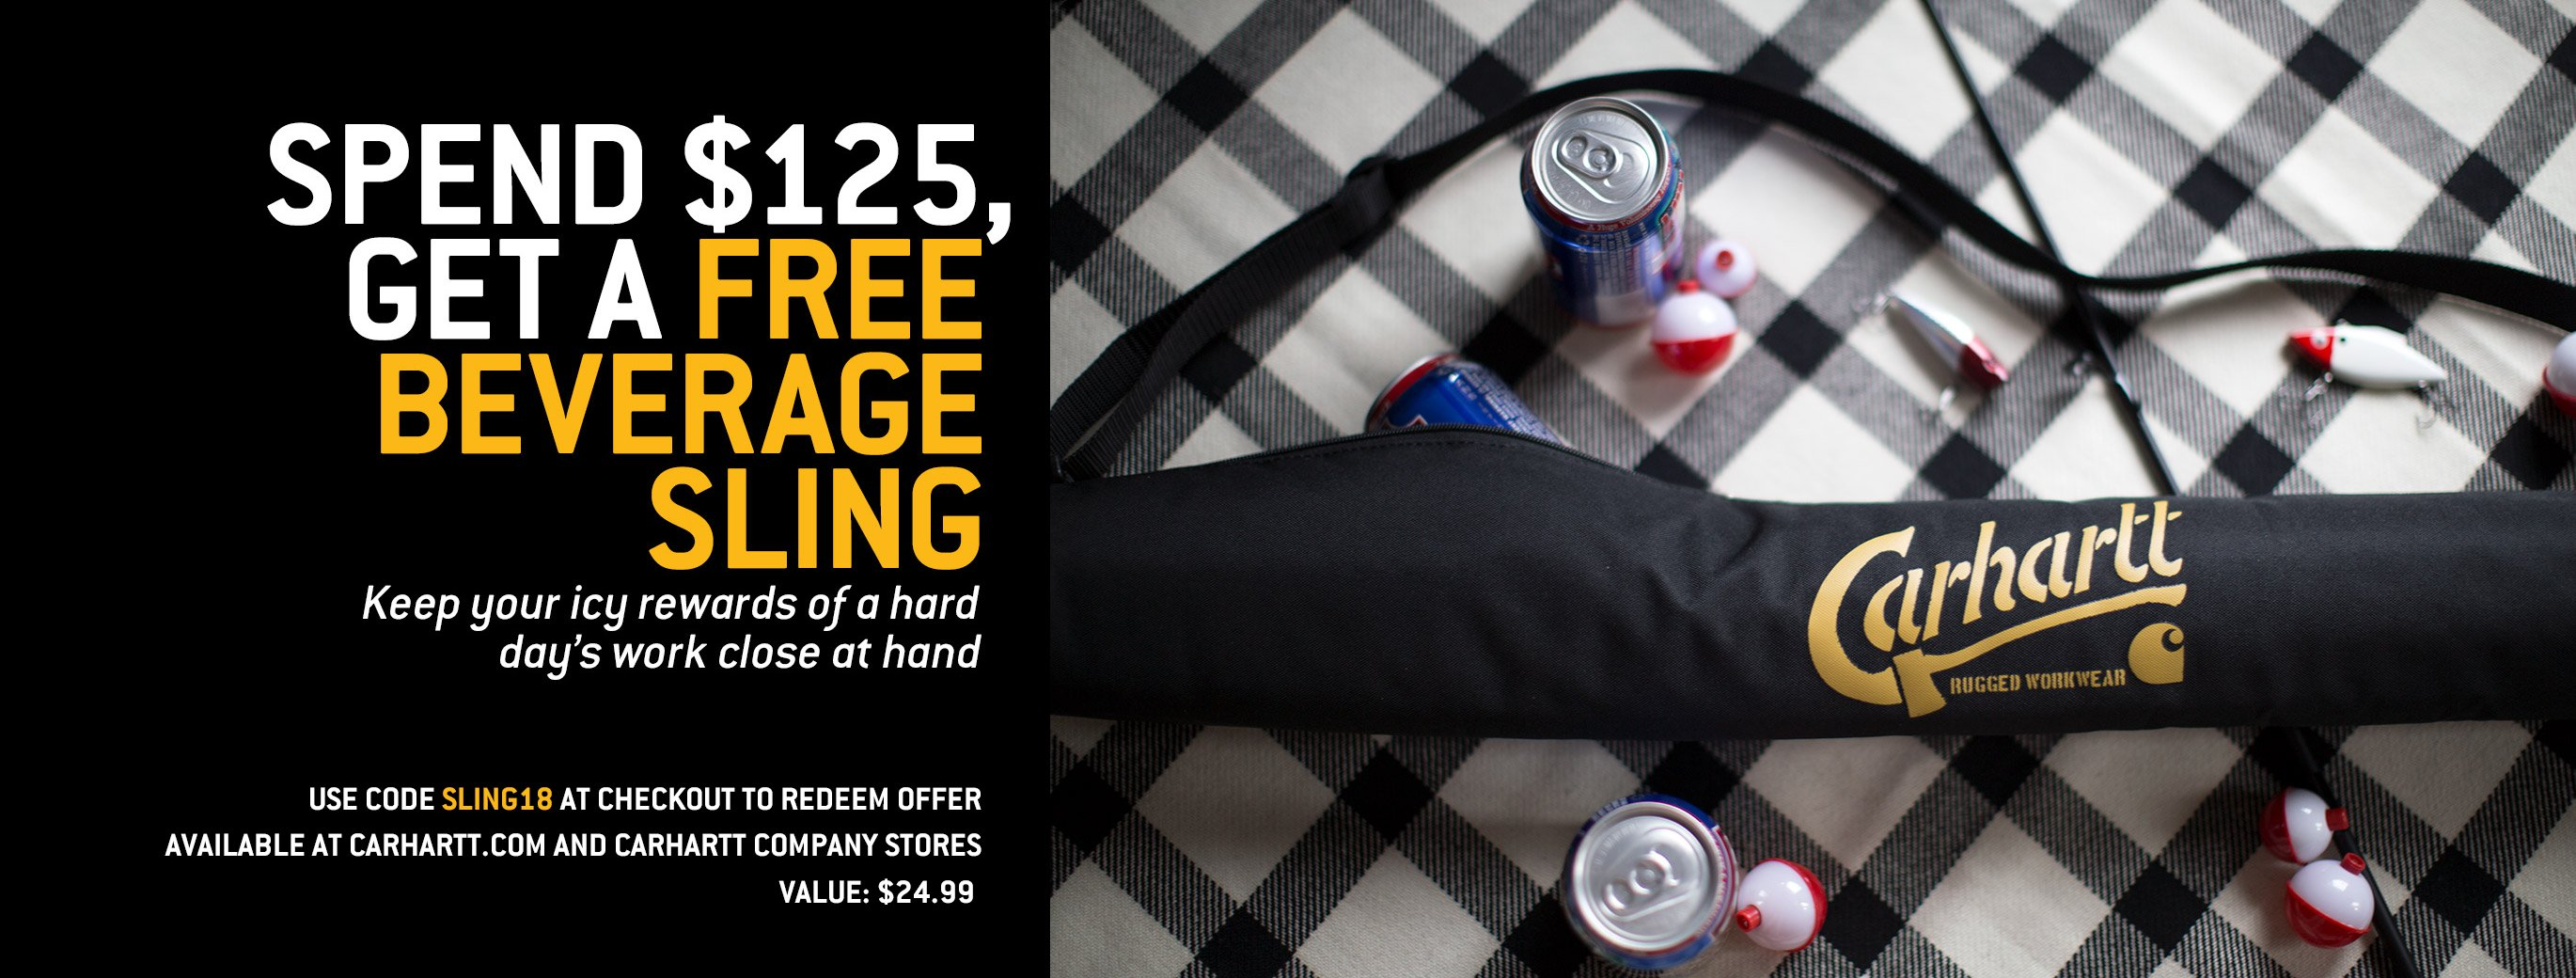 Spend $125, Get A Free Beverage Sling, Keep your icy rewards of a hard days work close at hand, use code sling18 at checkout to redeem offer, available at carhartt.com and carhartt company stores, value: $24.00